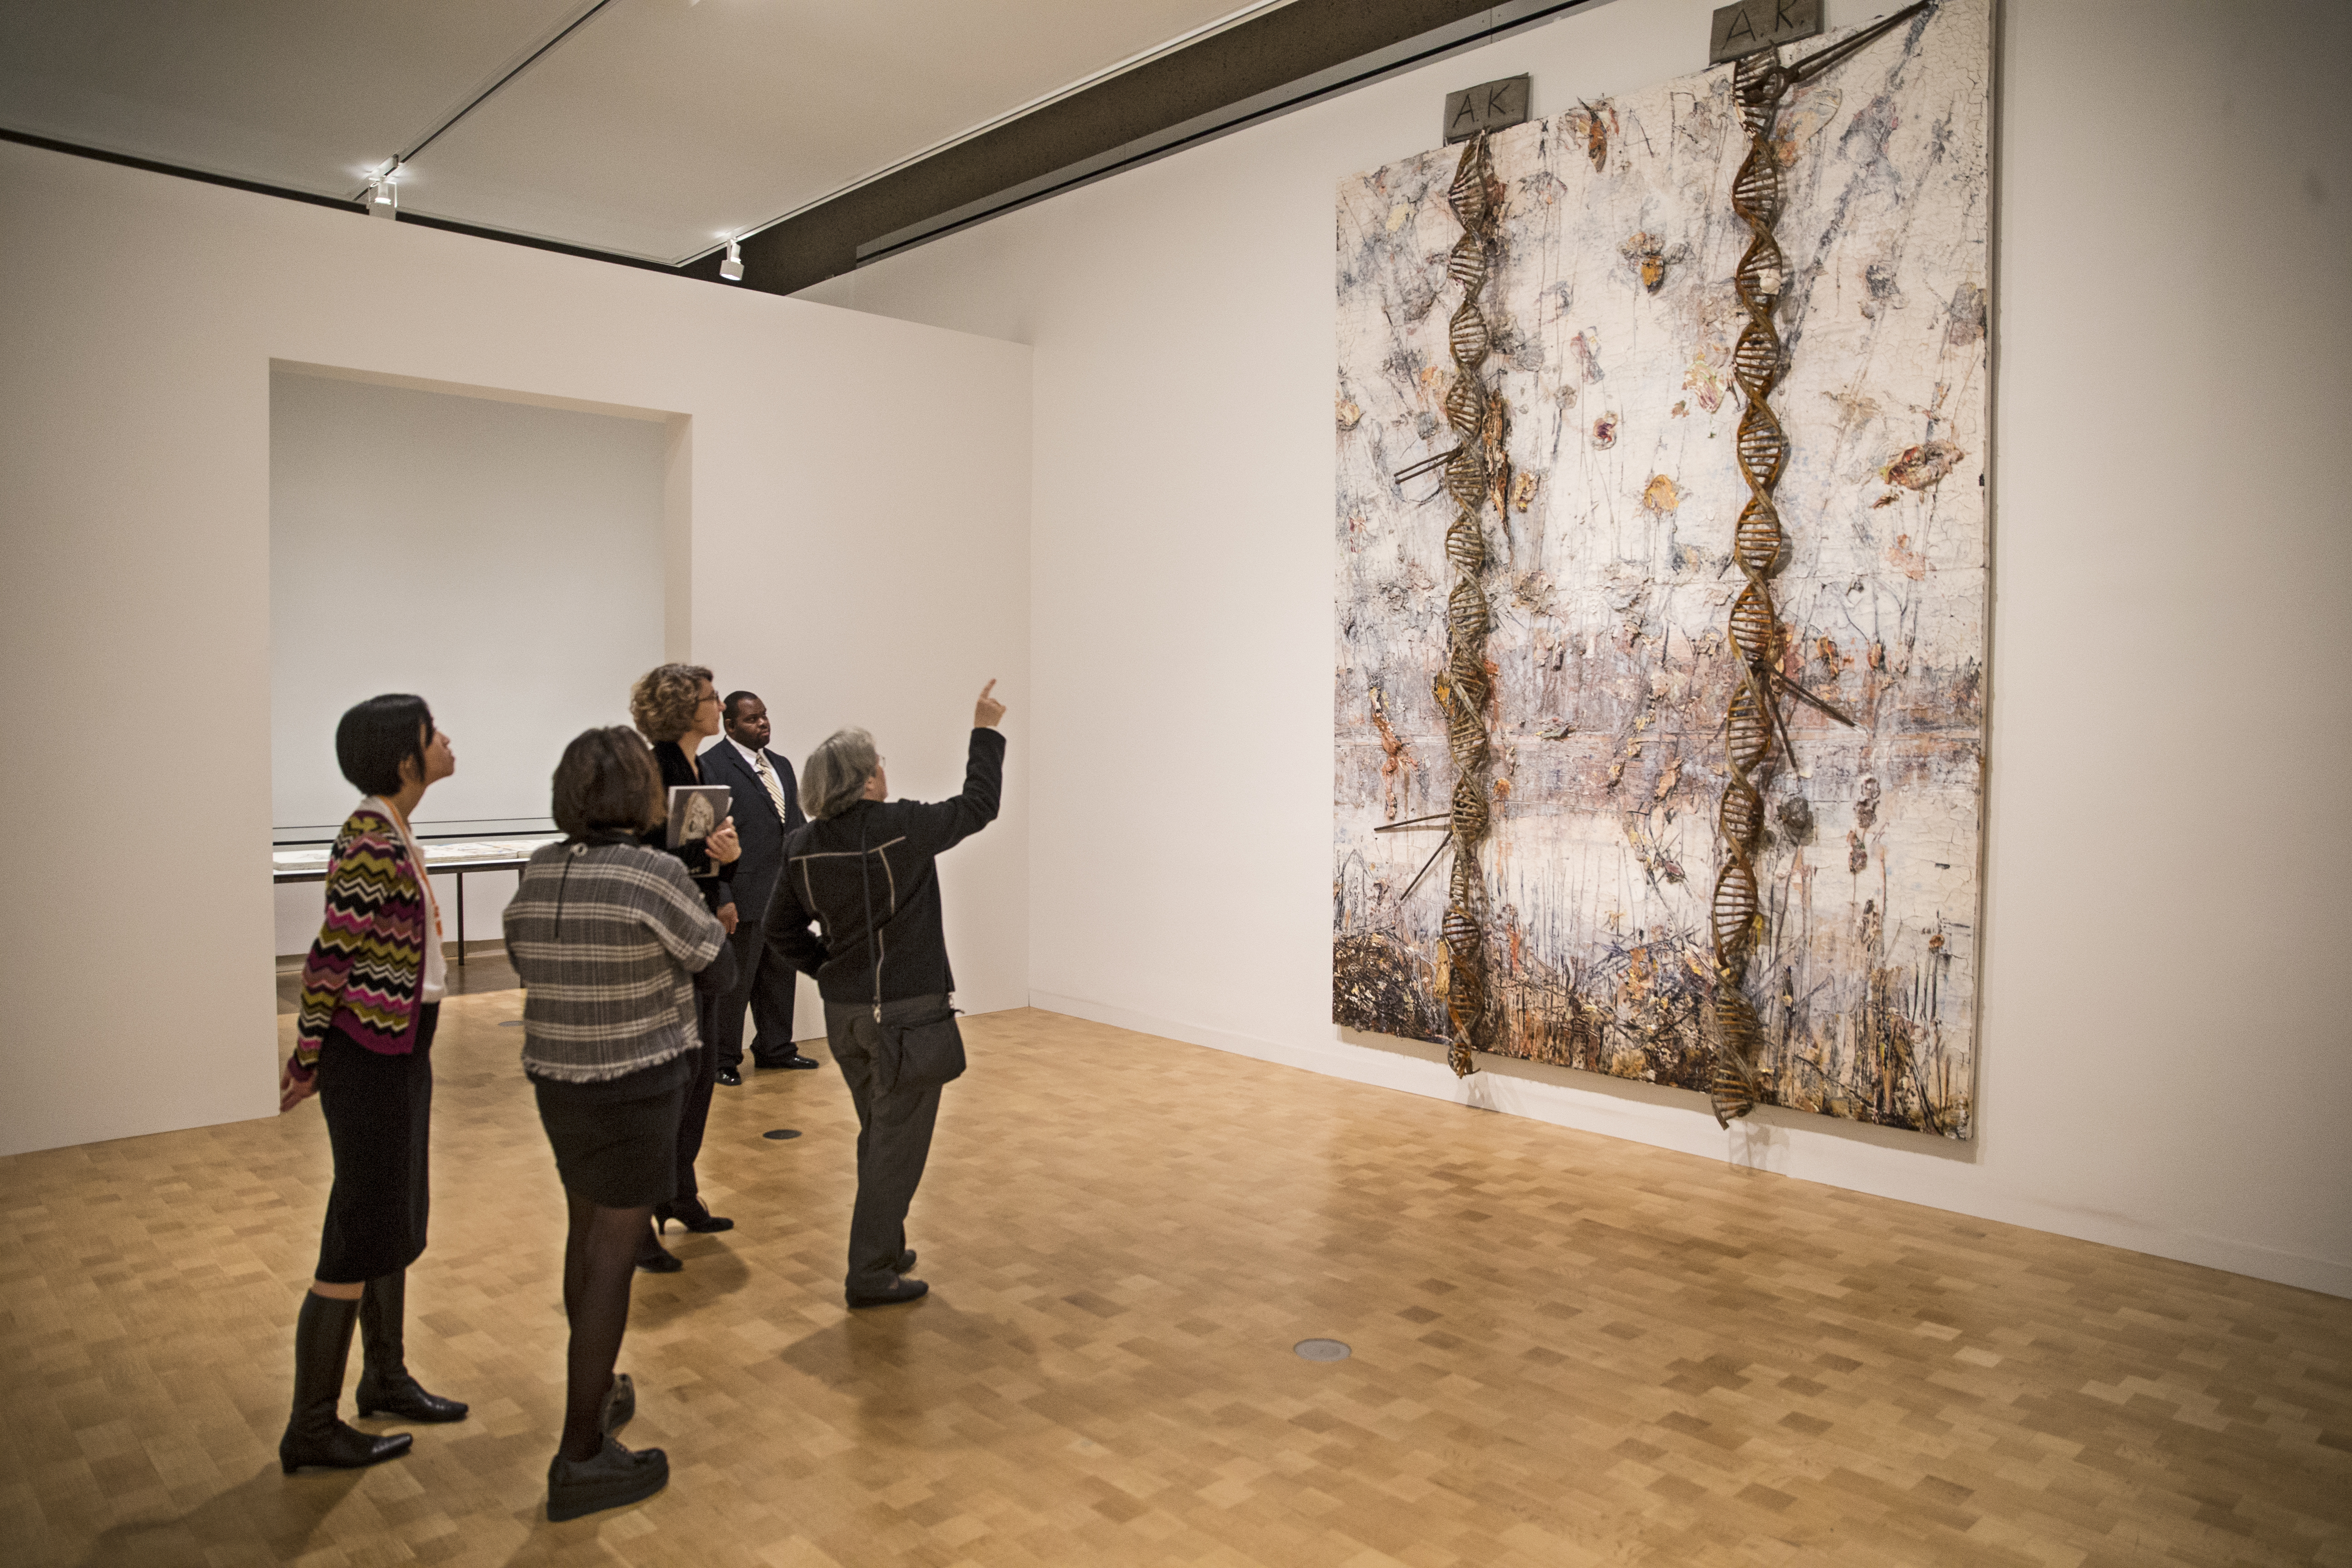 Visitors to the Barnes Foudation opening of the Kiefer Rodin Exhibition on Thursday November 16, 2017, discuss the painting A.R. A.K , 2017, oil, acrylic, clay, metal, plaster, lead and zinc on canvas, painted by Anselm Kiefer. German painter Anselm Kiefer, widely seen as one of the most significant artists in the world, has produced work inspired by Rodin. The Barnes Foundation hosts the fruit of this artistic encounter, Kiefer-Rodin, in its special exhibition opening Friday. The artist, known for his monumental canvas explorations of the tragedies of German history.